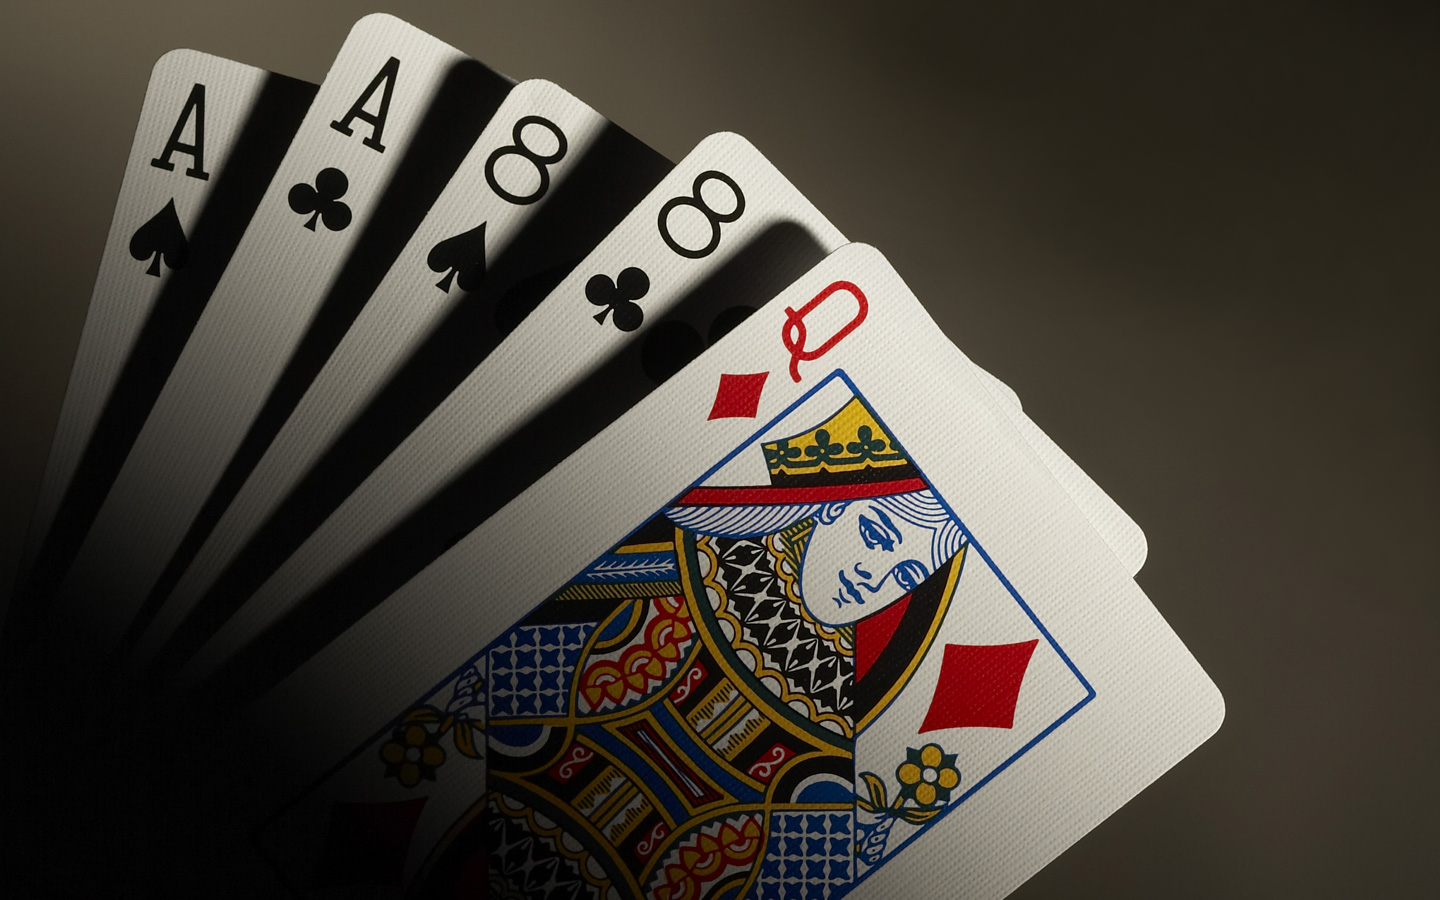 cards-1440.png (1440×900)